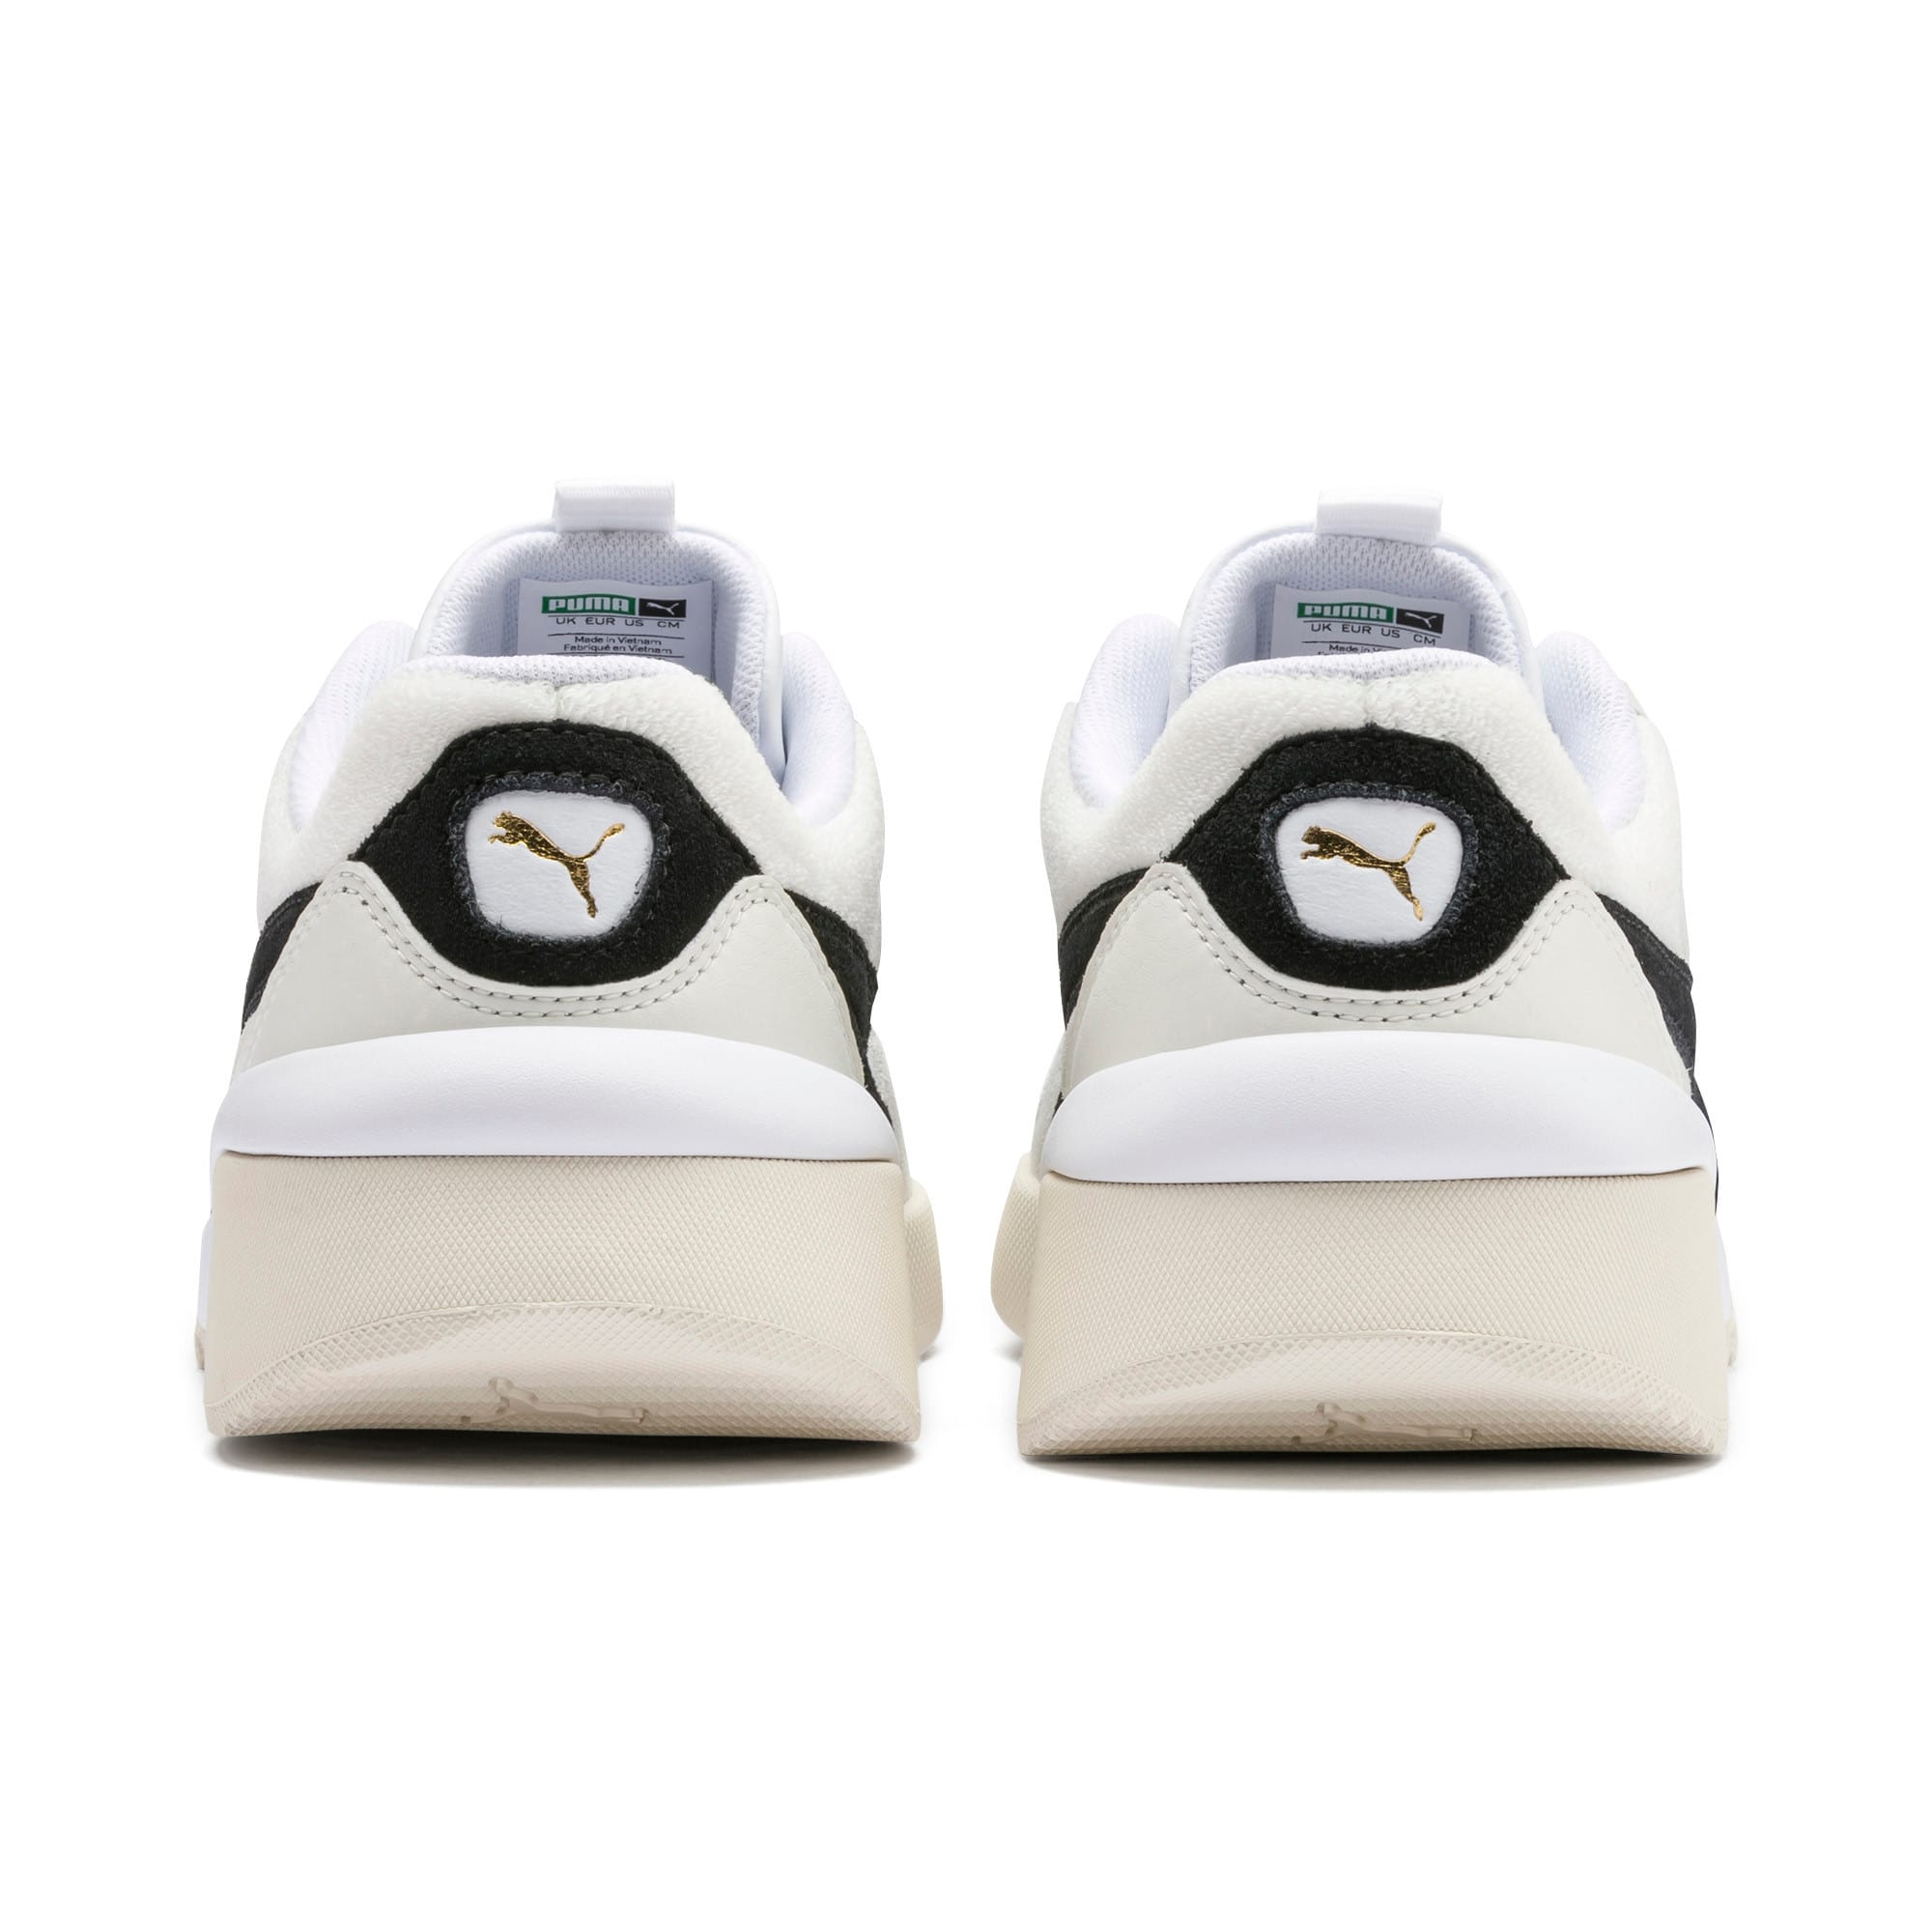 Thumbnail 4 of Aeon Heritage Women's Sneakers, Puma White-Puma Black, medium